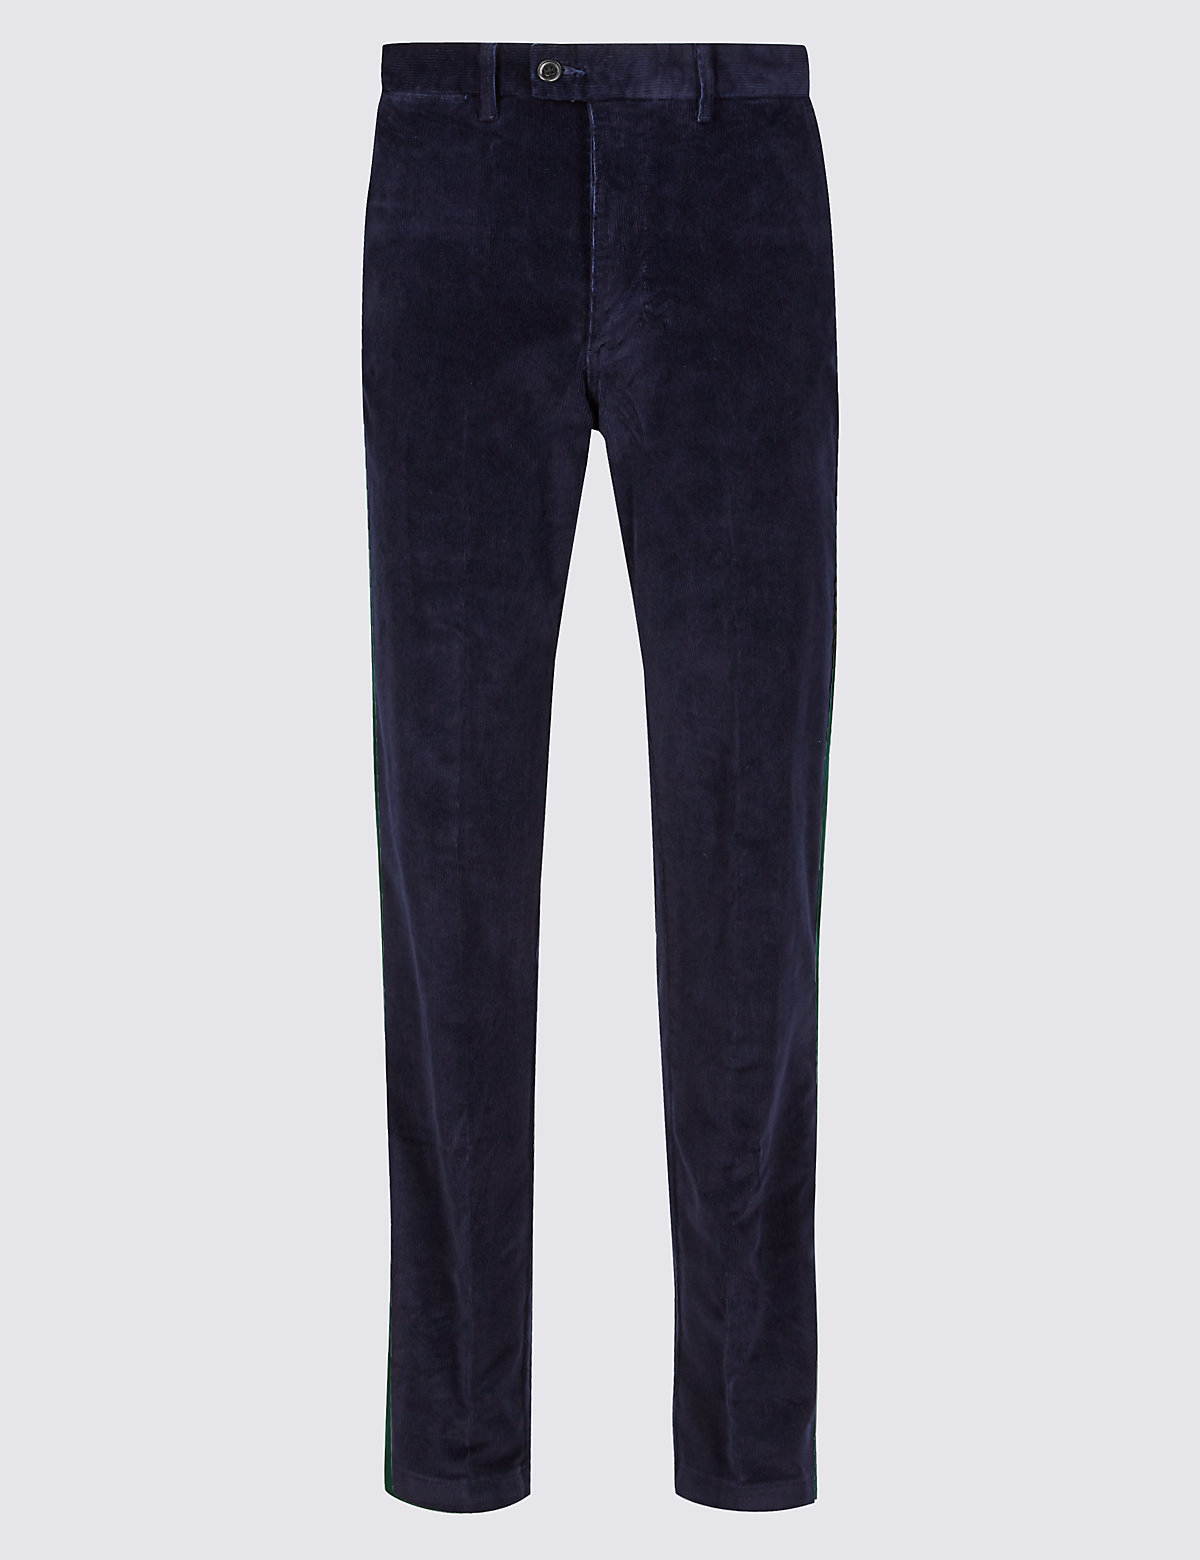 Marks & Spencer Navy Big & Tall Regular Fit Corduroy Trousers